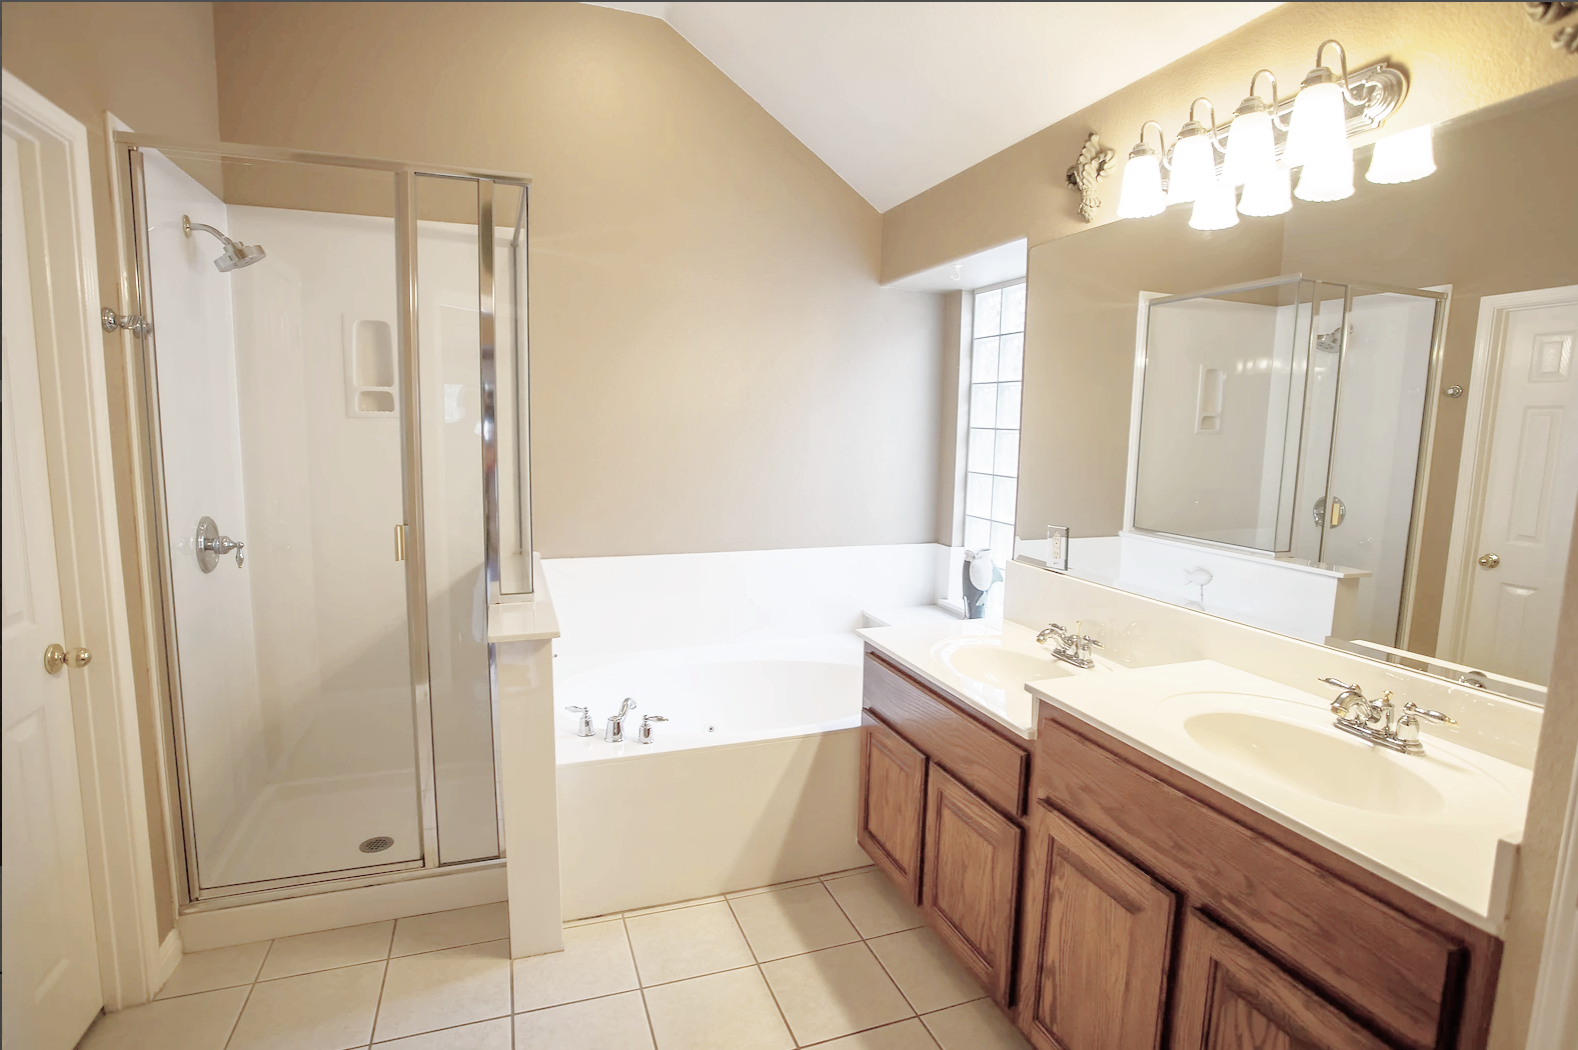 Dual Vanities and Soaker Tub